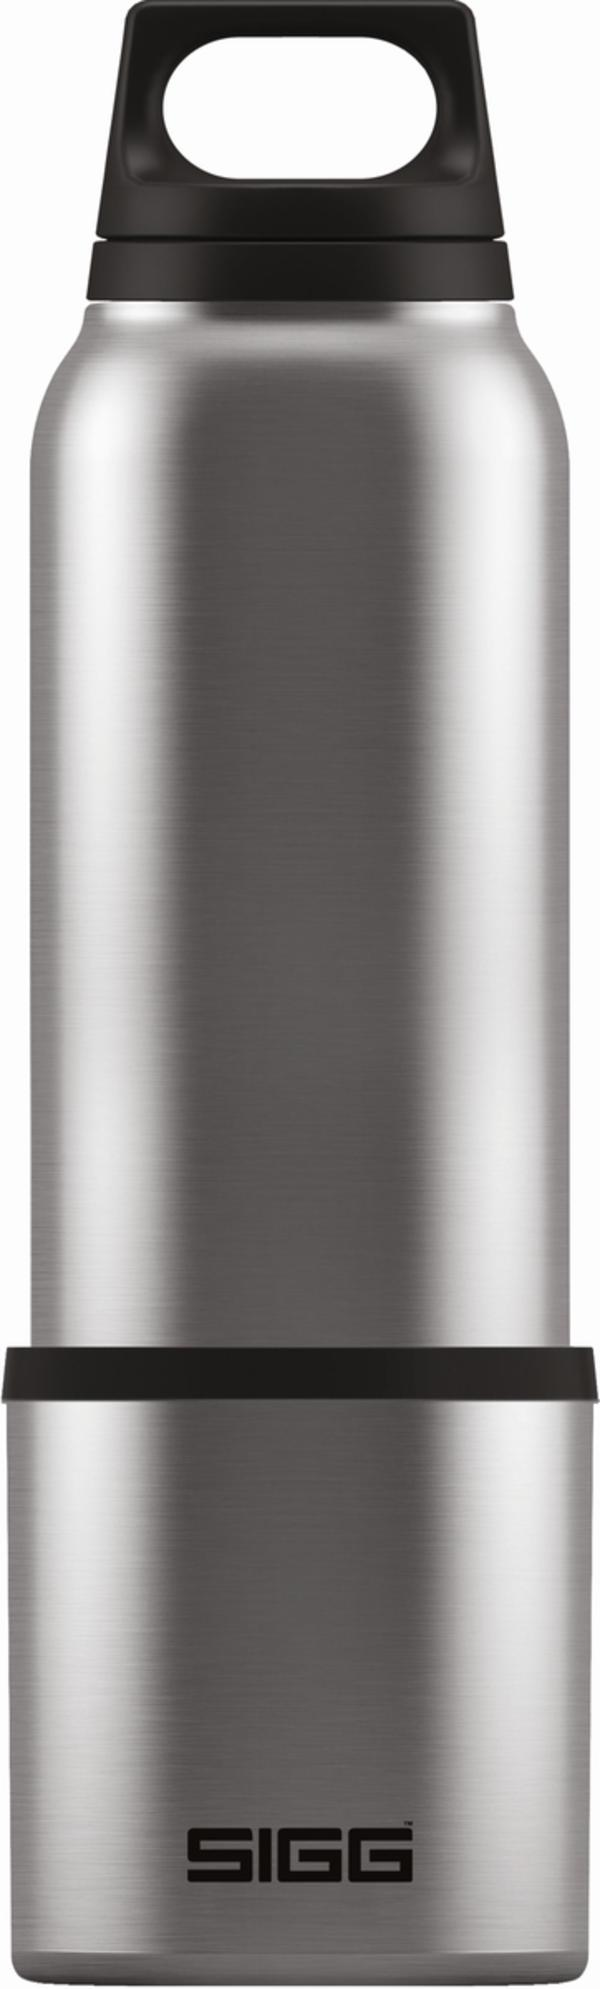 SIGG Trinkflasche Hot & Cold Brushed mit Cup 0.75l